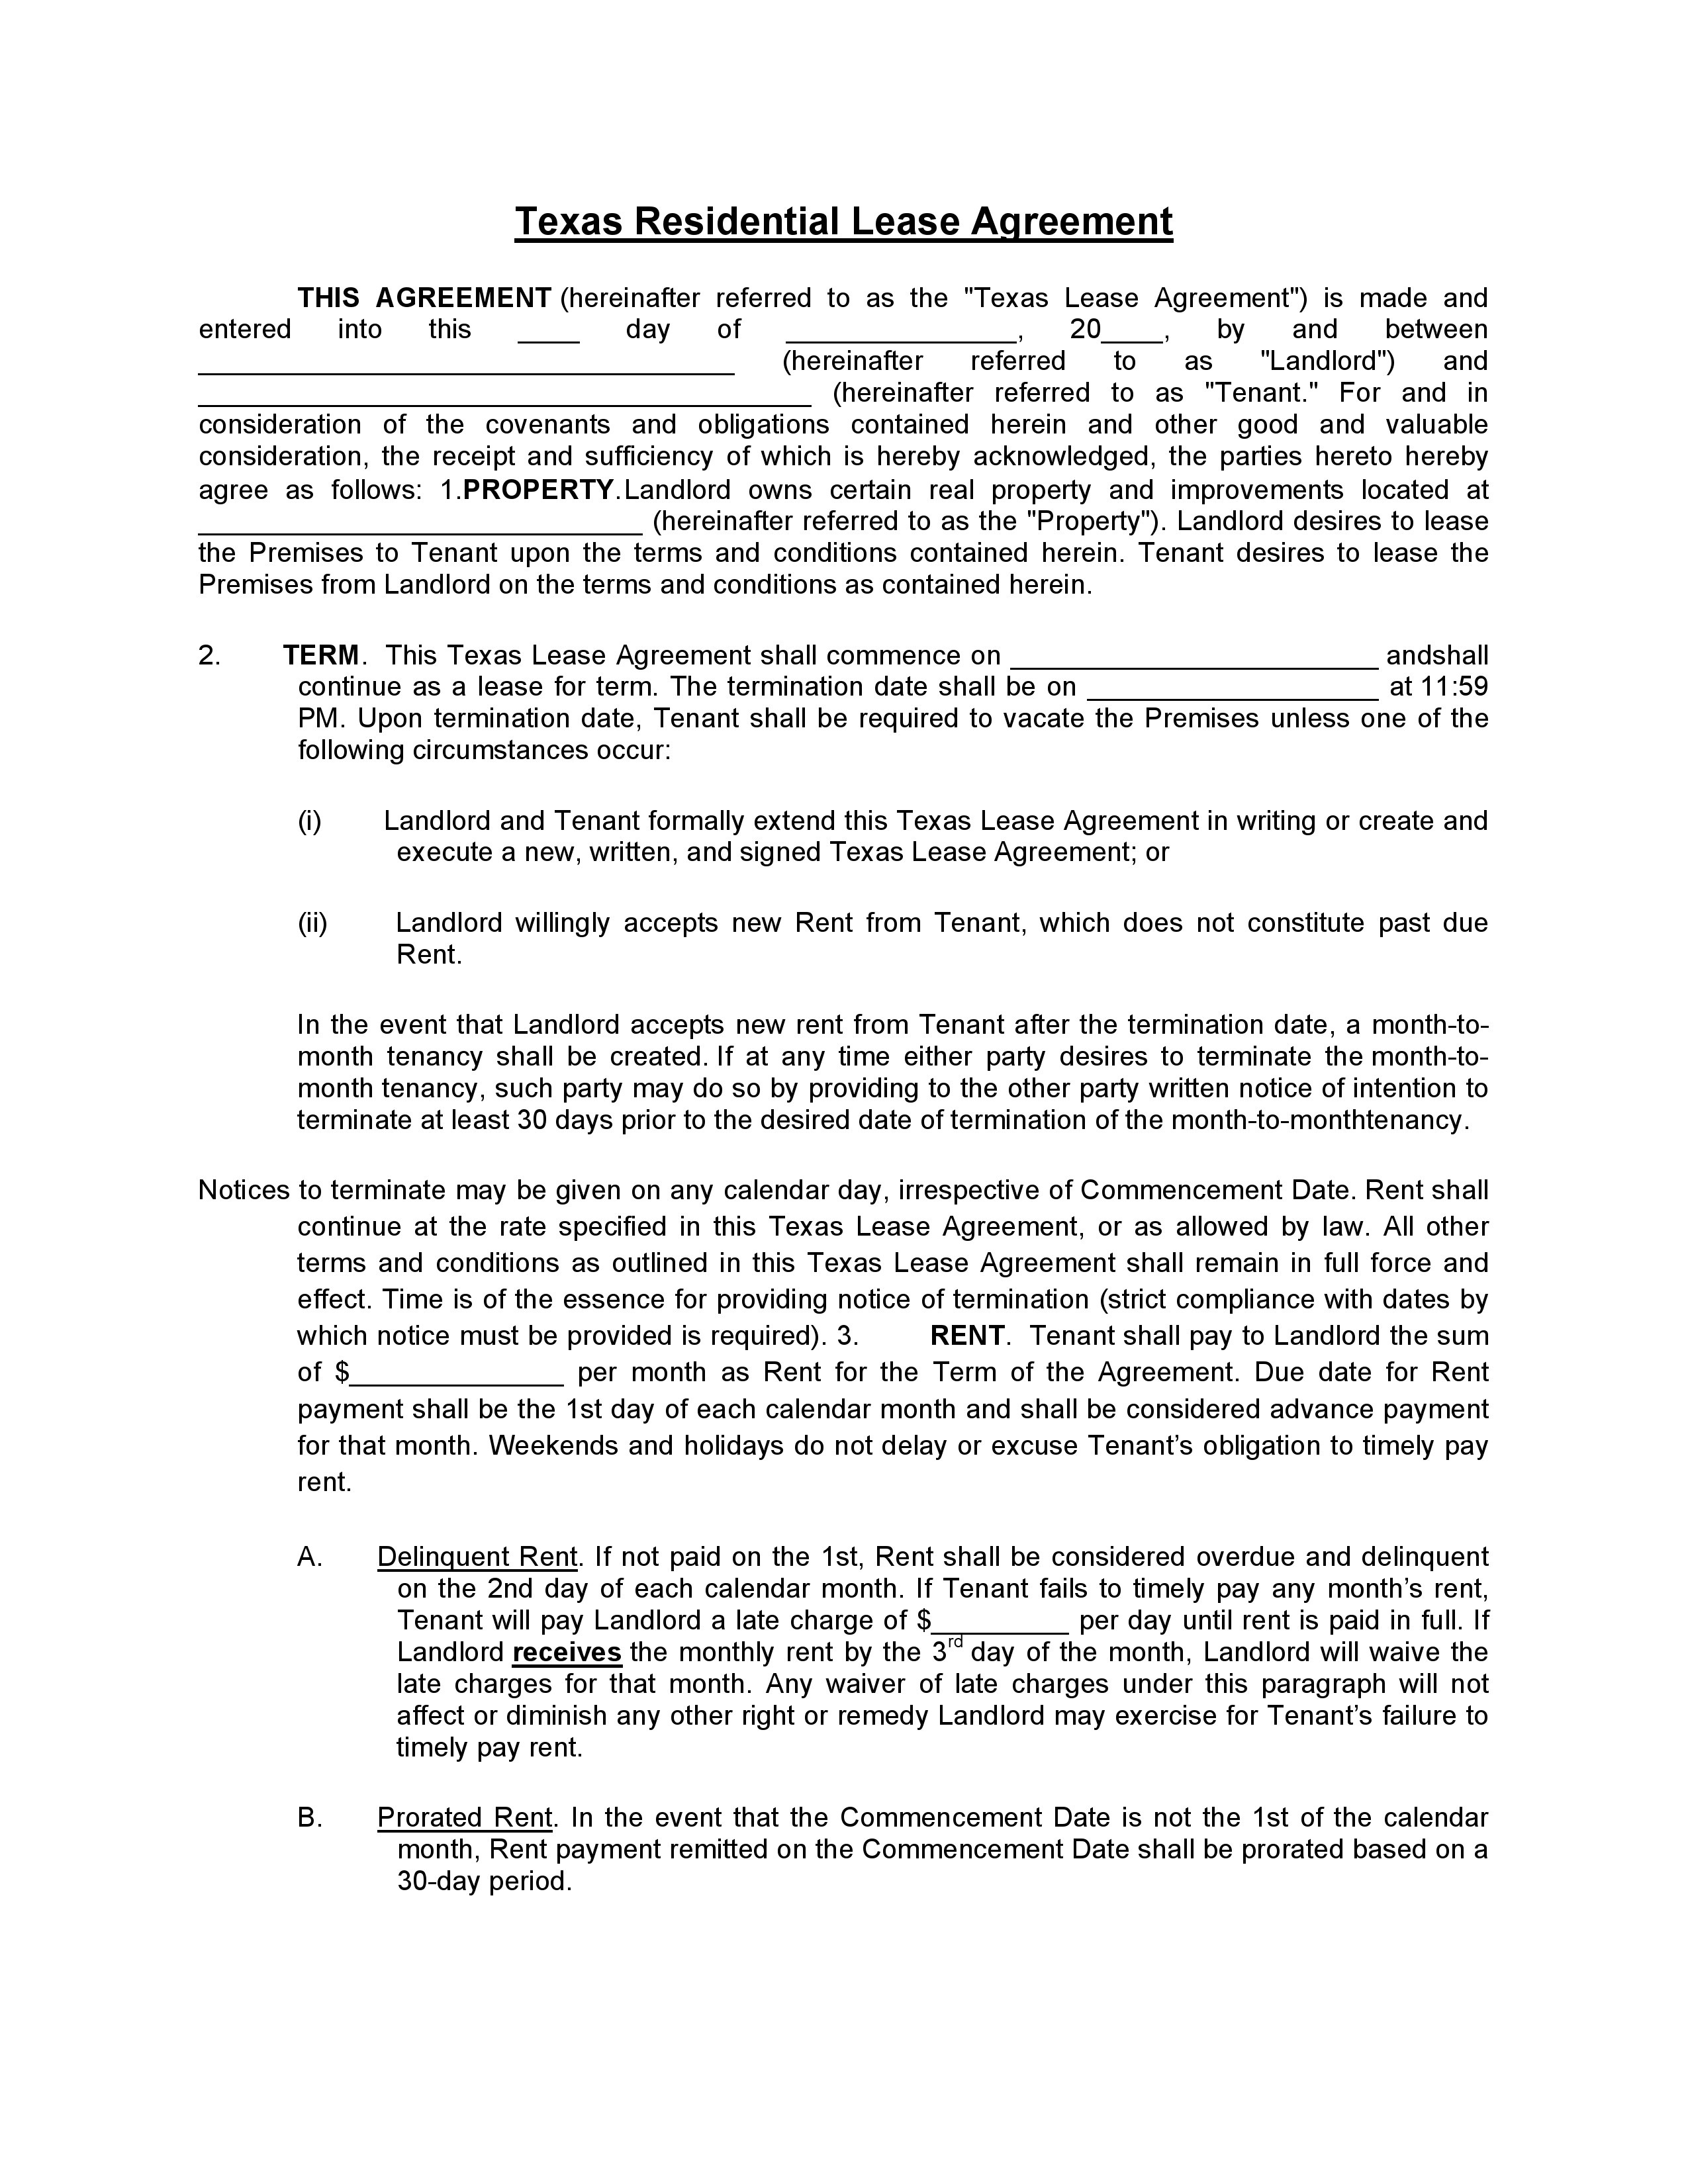 Download Free Texas Residential Lease Agreement - Printable Lease - Free Printable Lease Agreement Texas